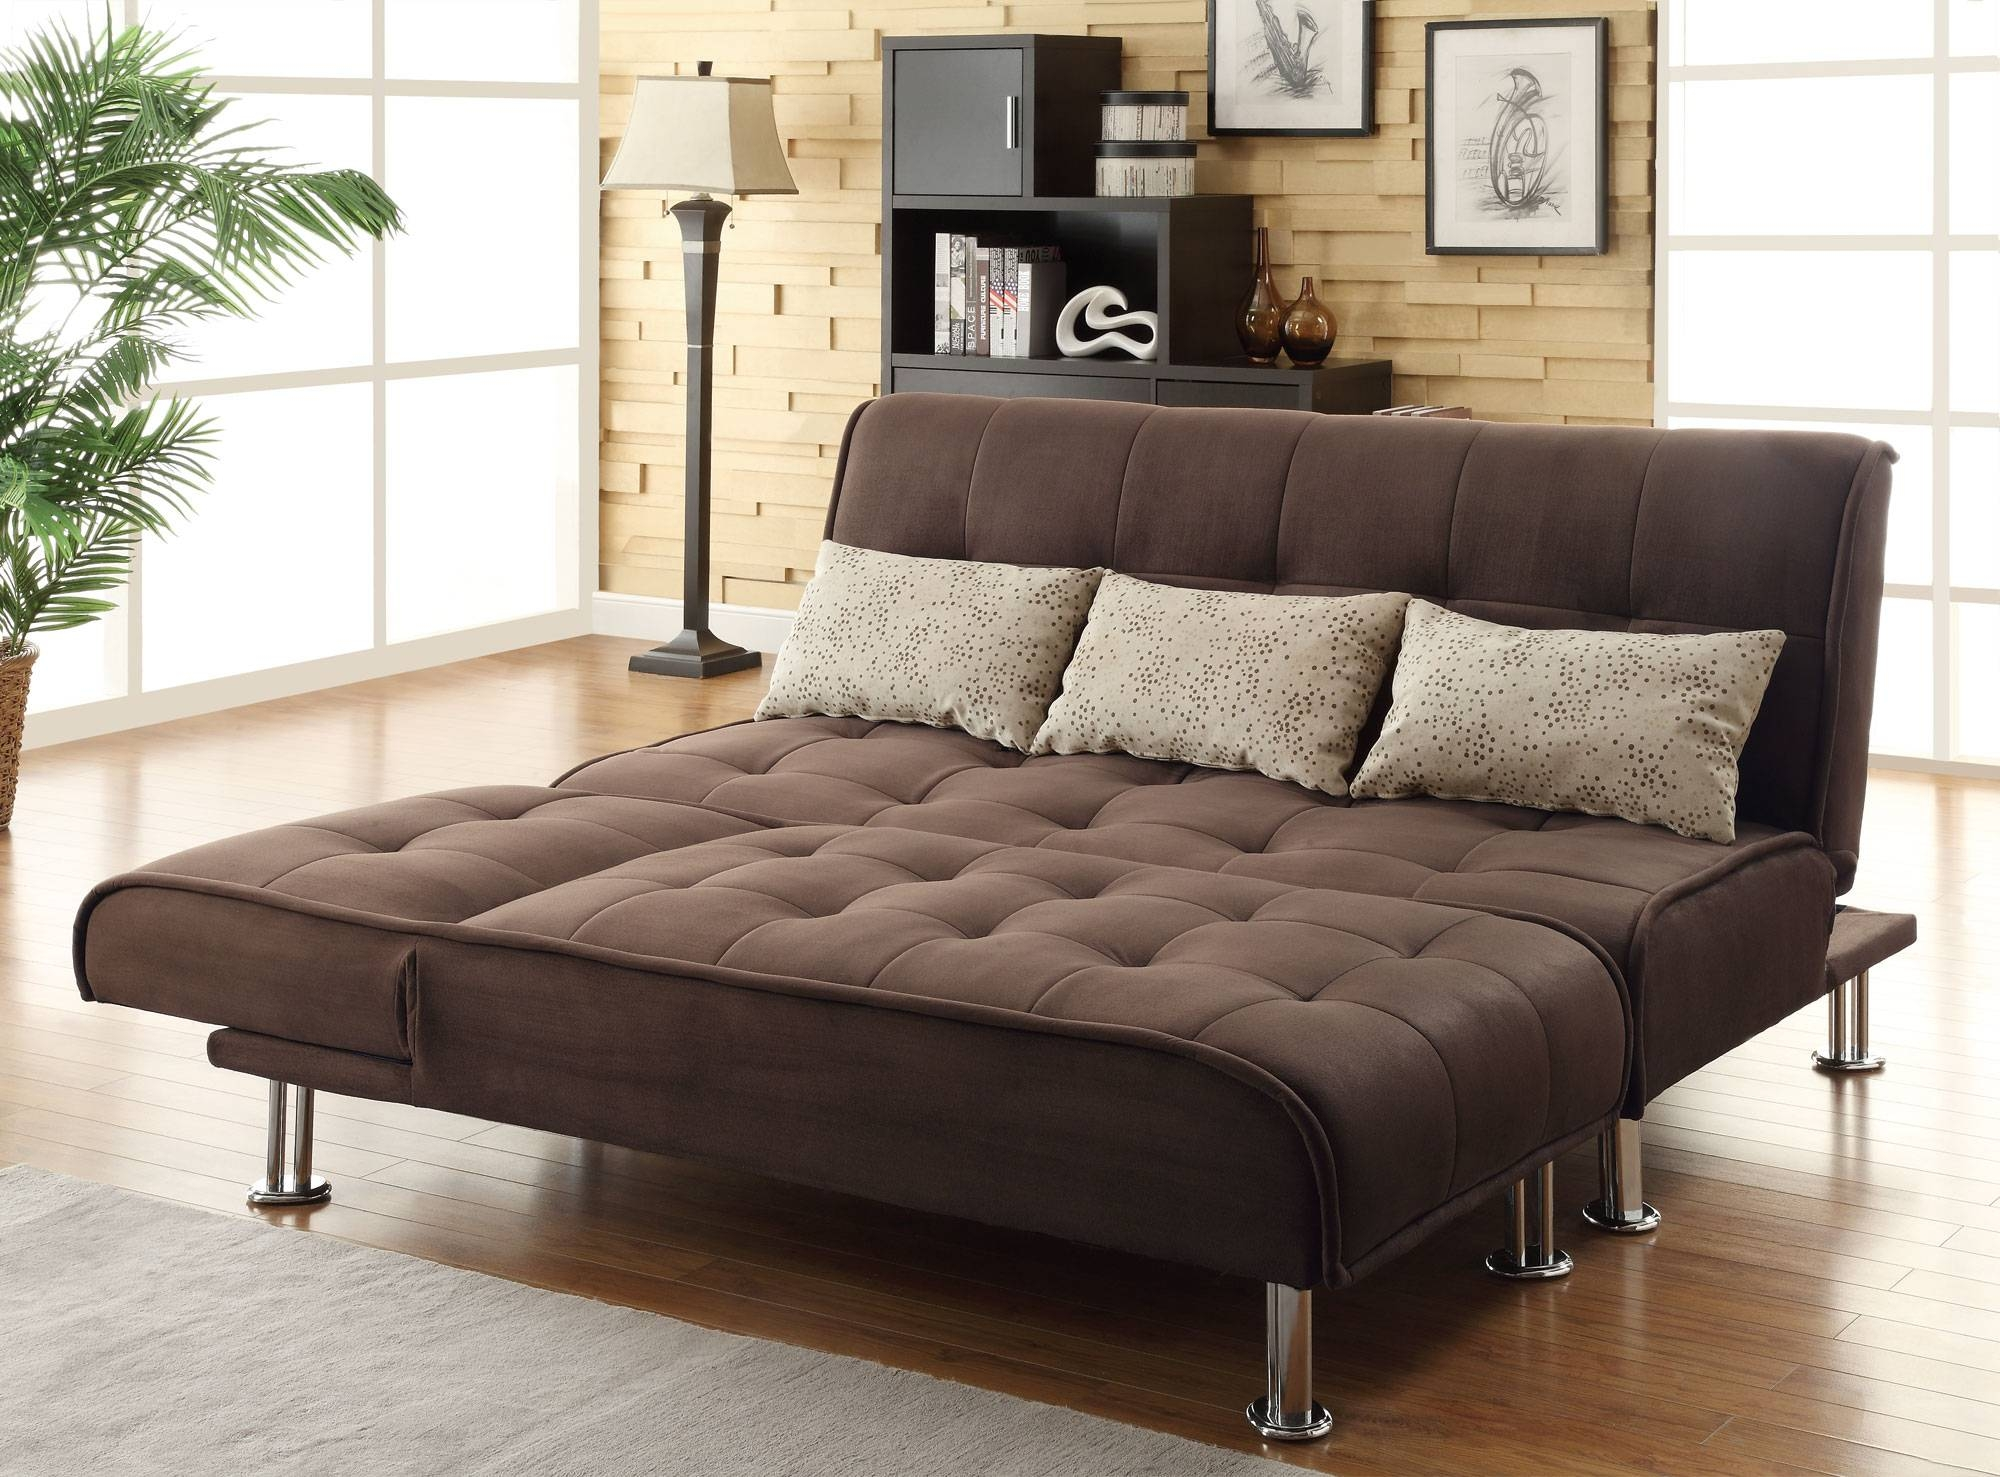 The Best Fulton Sofa Beds